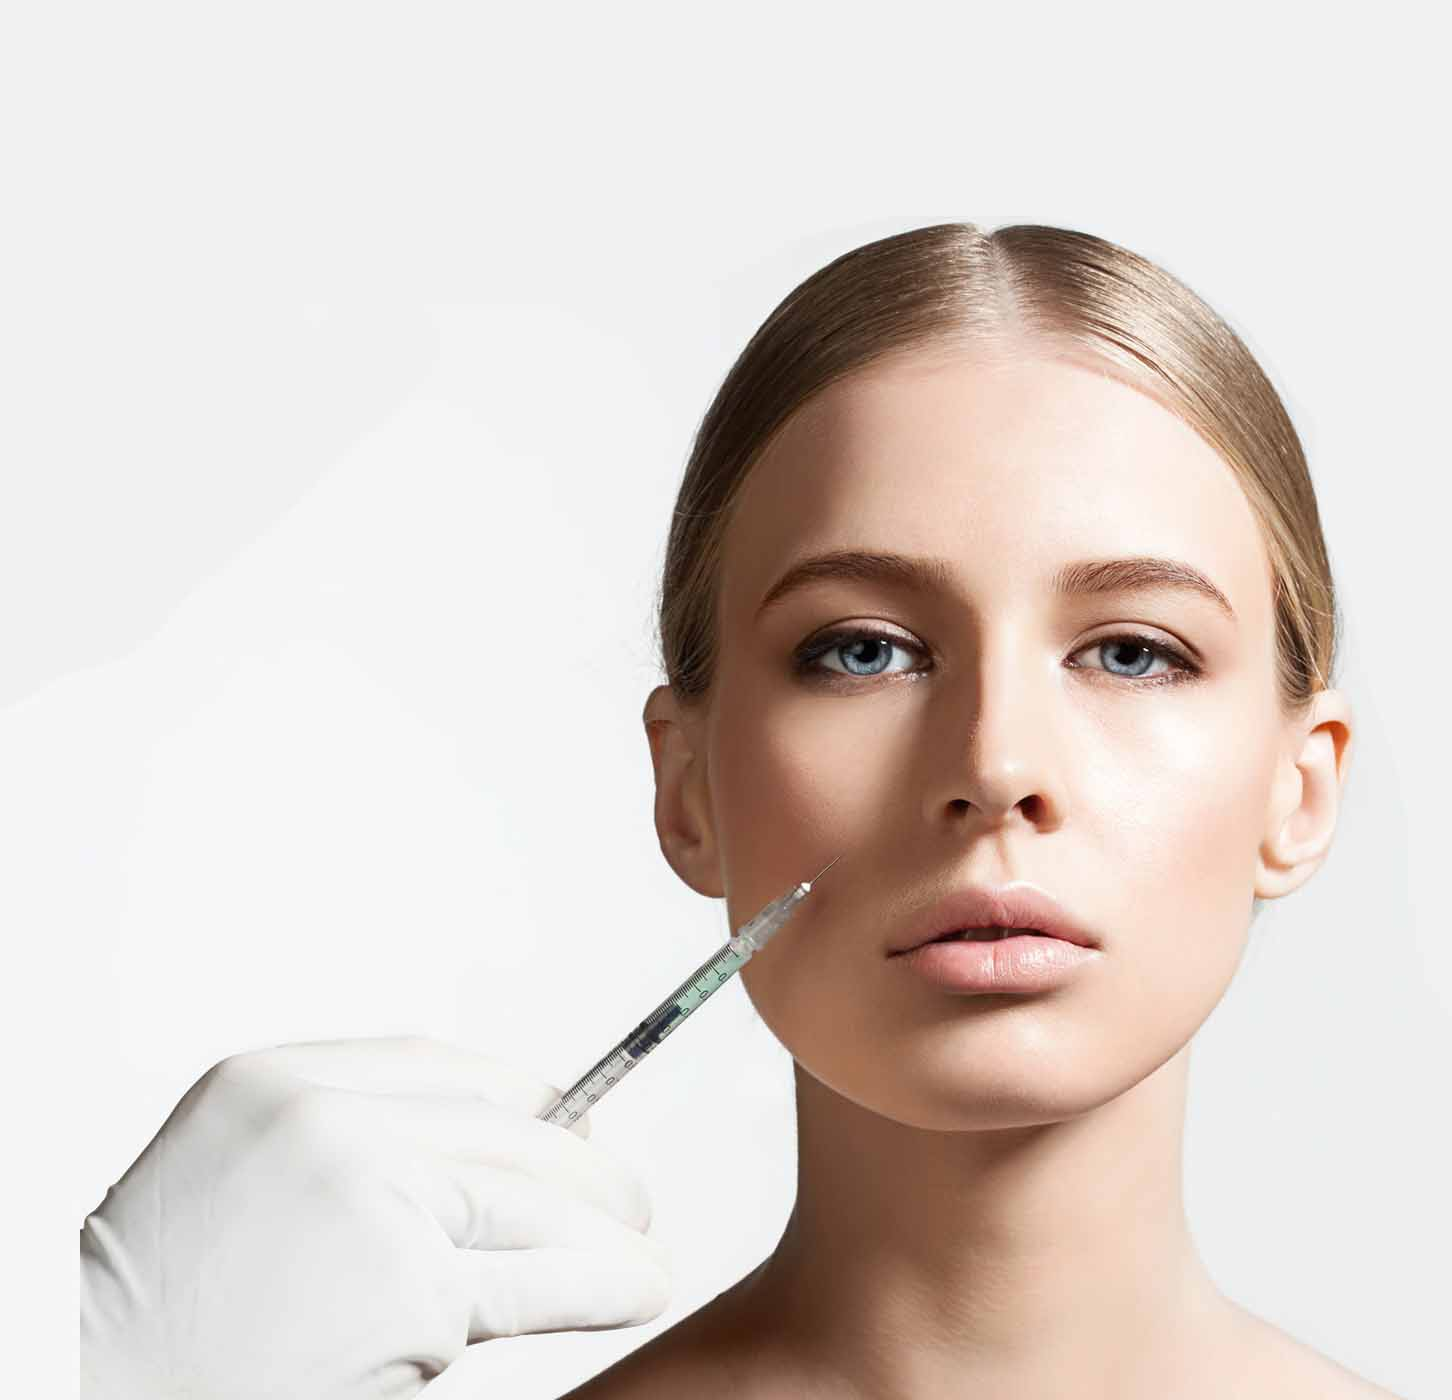 Tear Trough Fillers By London's Leading Ophthalmic Surgeon